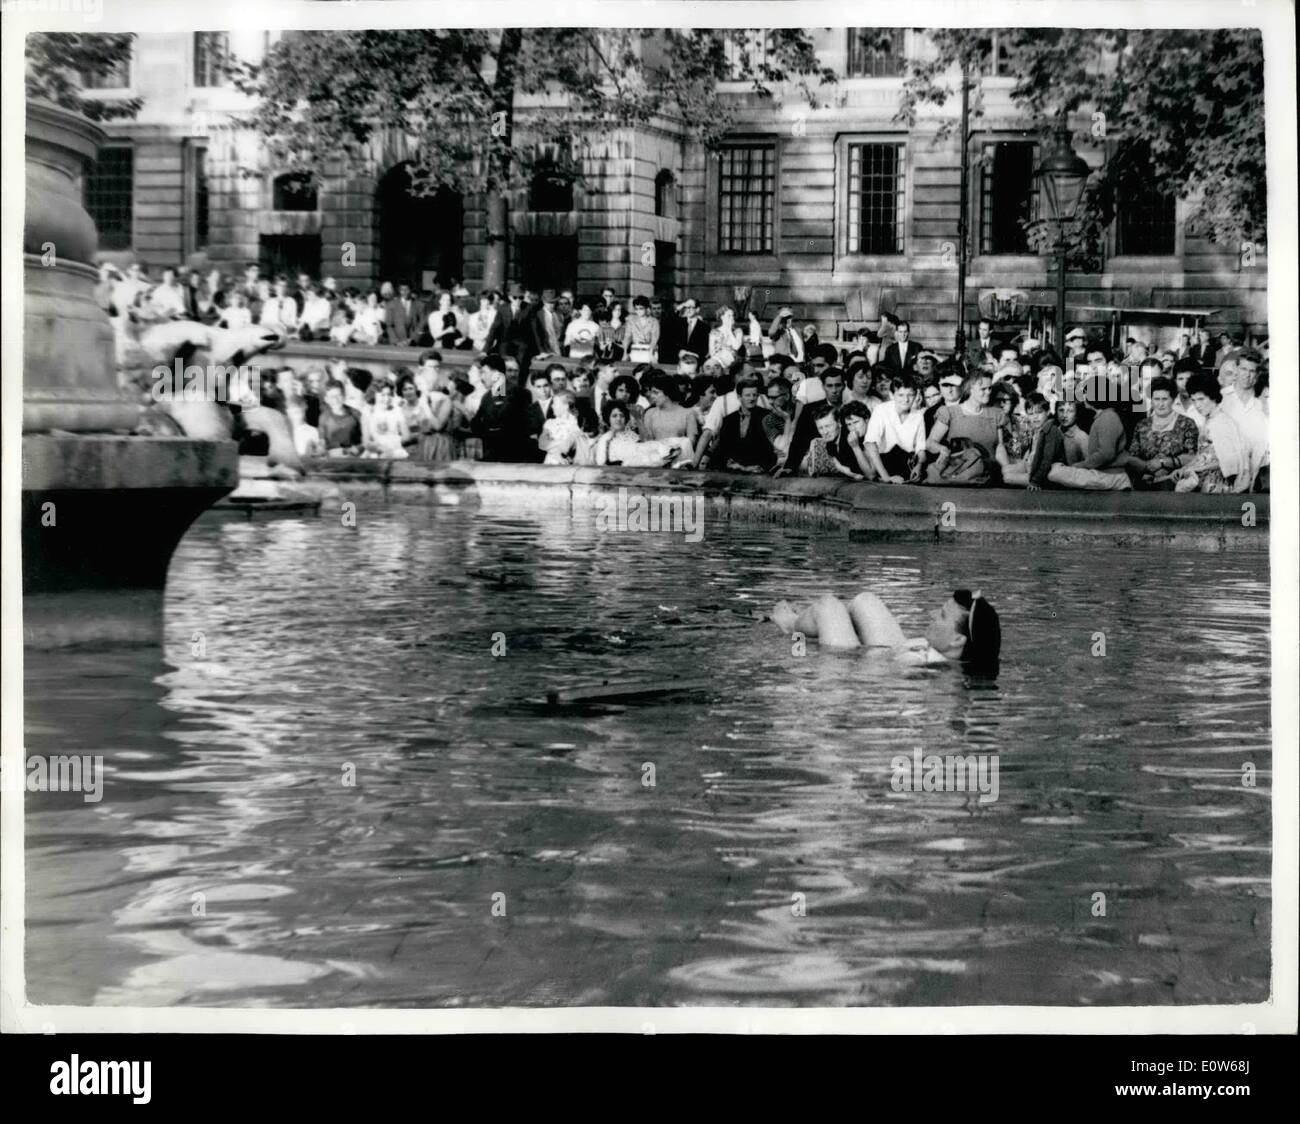 Aug. 08, 1961 - Wonman Goes For Bather In Trafalgar Square: A n middle aged woman went for a ''bather'' in one of the Trafalgar - Stock Image